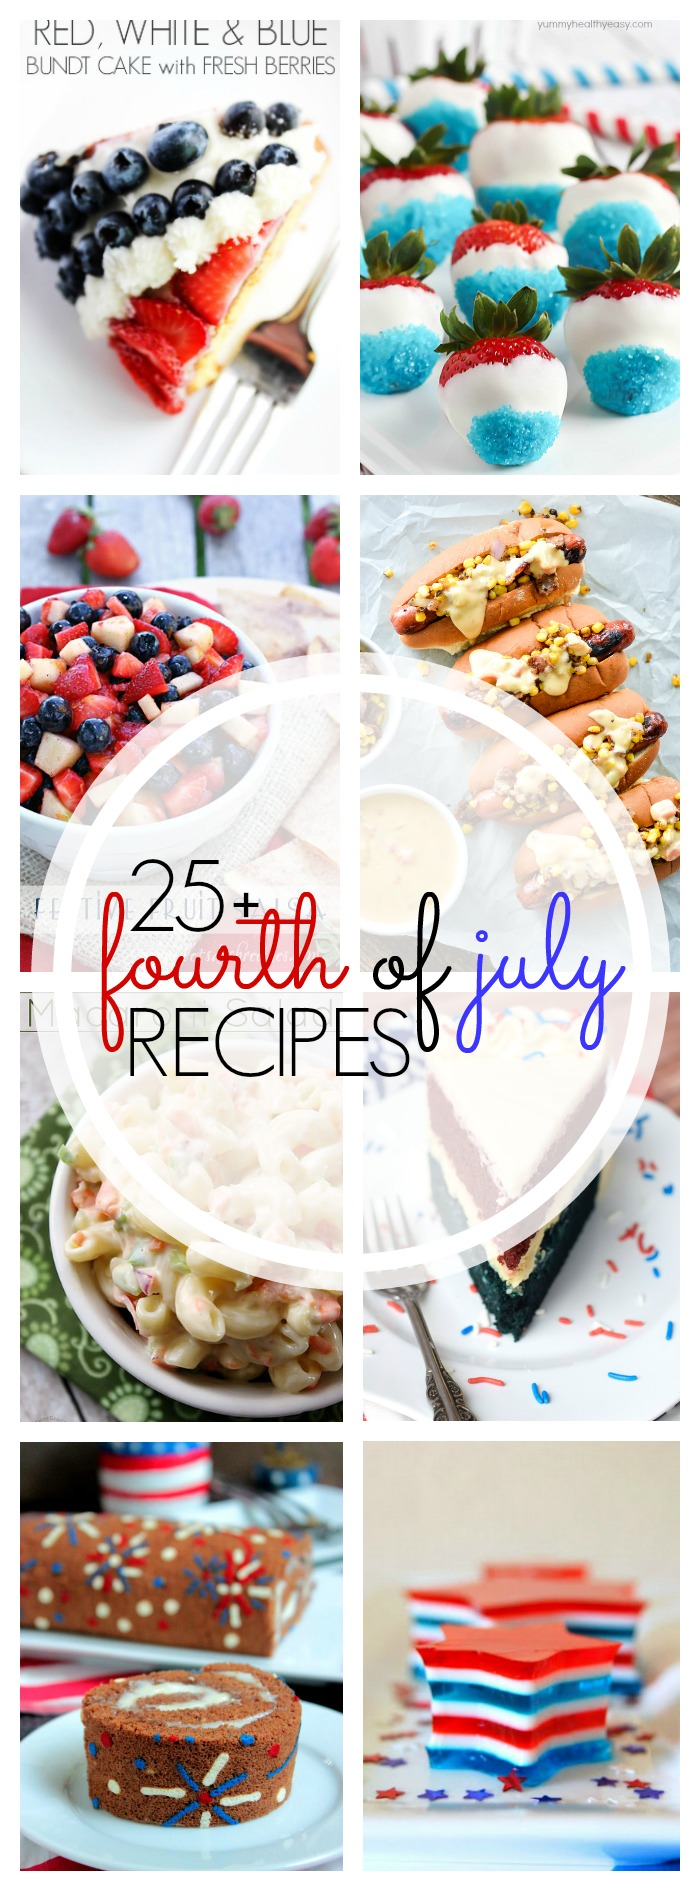 These 25+ 4th of July Party Recipes are sure to make your holiday extra special! Whether you're looking for a delicious main dish or a fantastically fun red, white & blue dessert, we've got you covered!